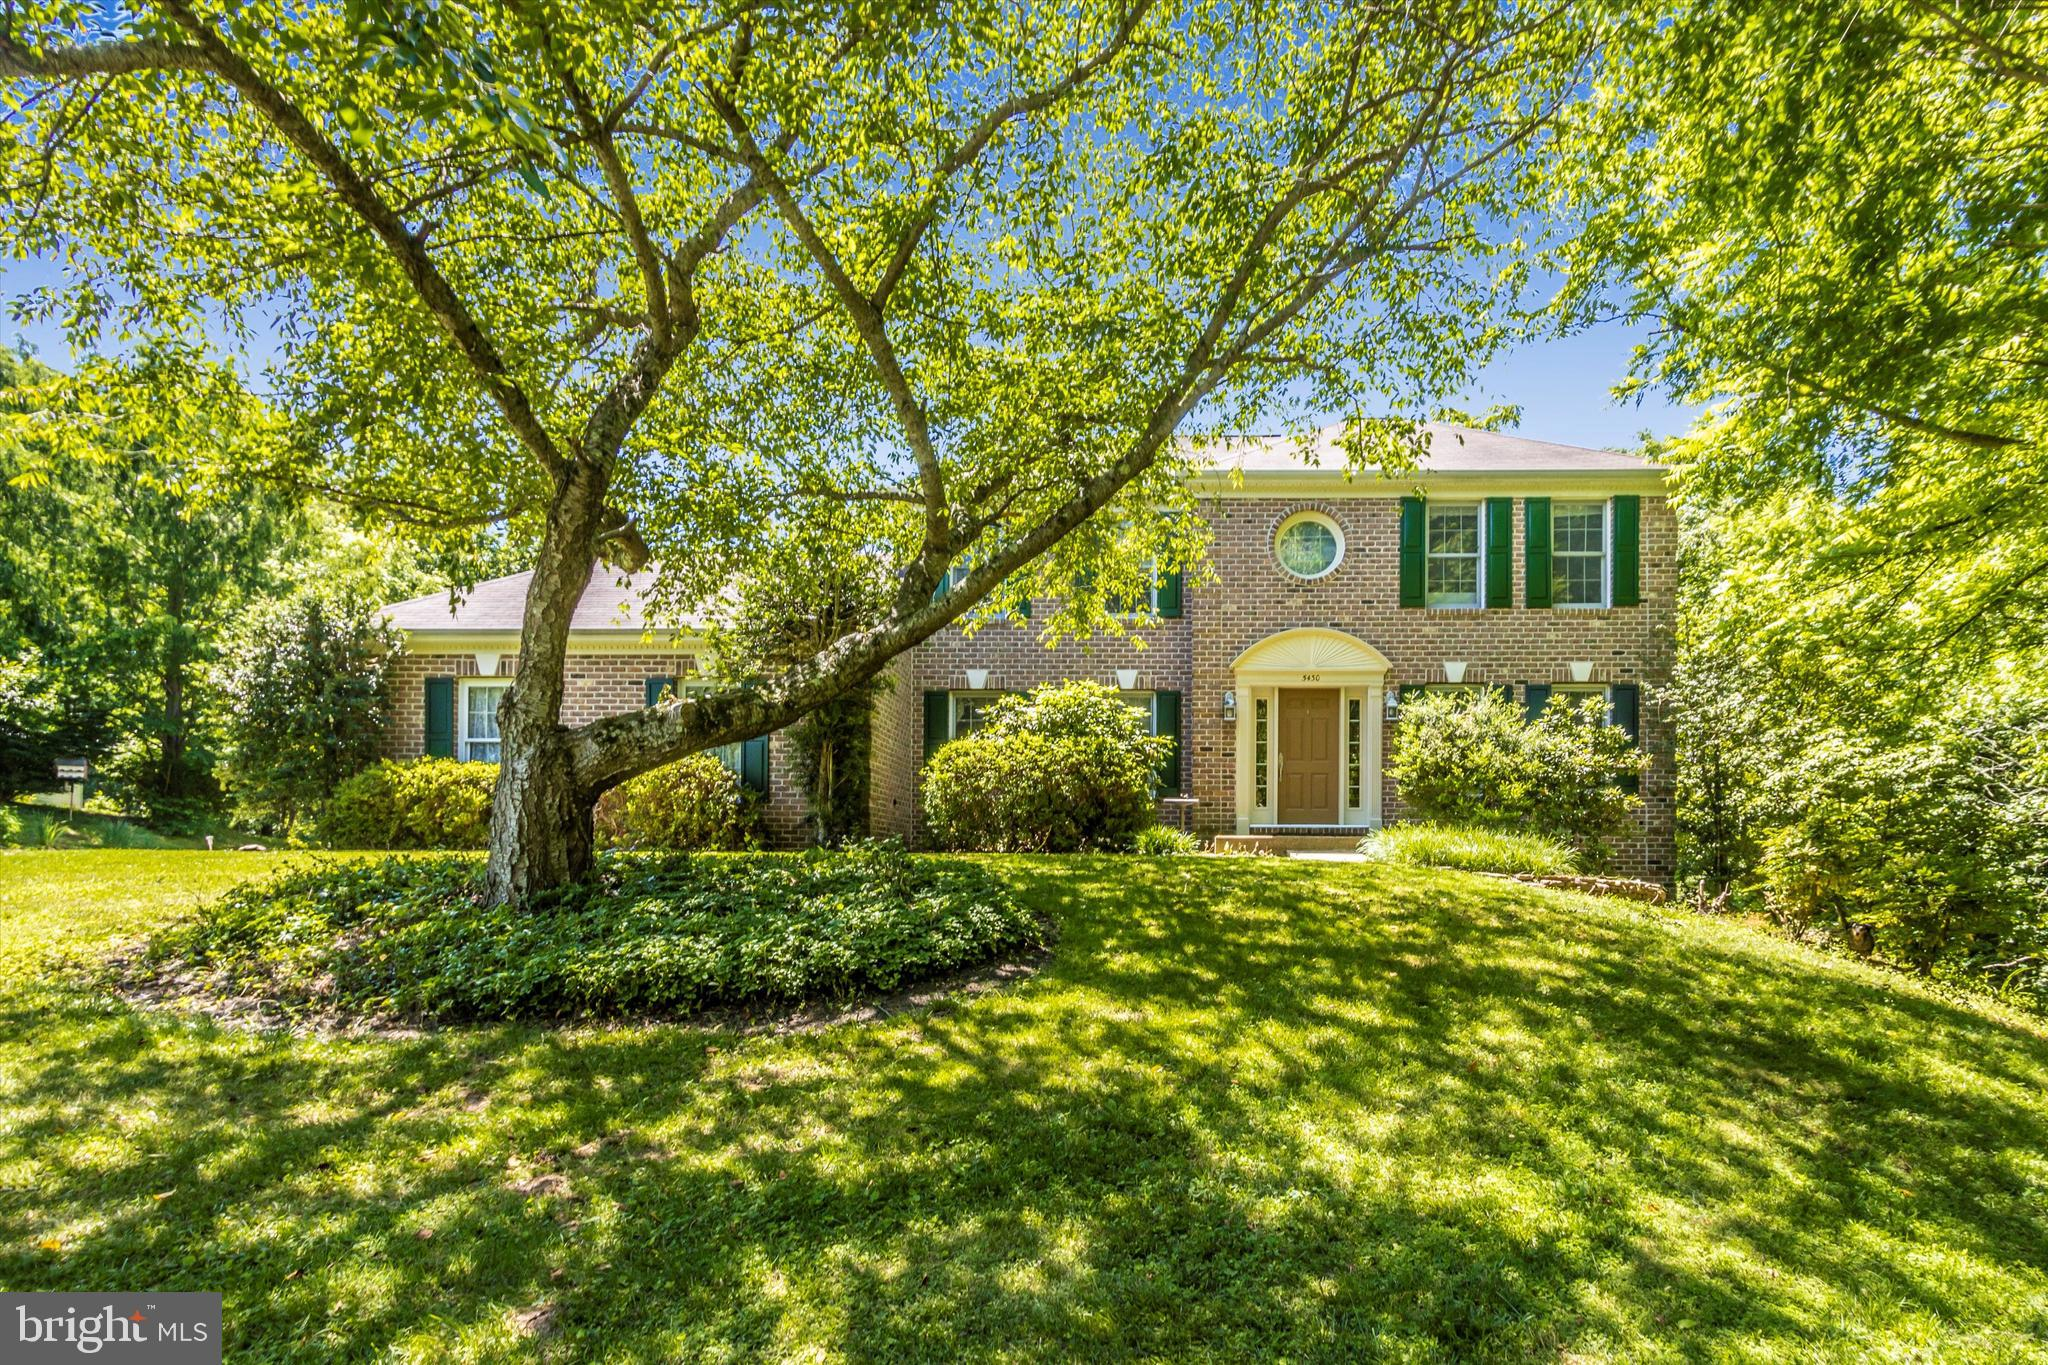 CHARMING  HOME ON  MAJESTIC  LOT TUCKED AWAY ON PRIVATE ROAD*FINISHED  LOWER  LEVEL WITH SECOND KITC